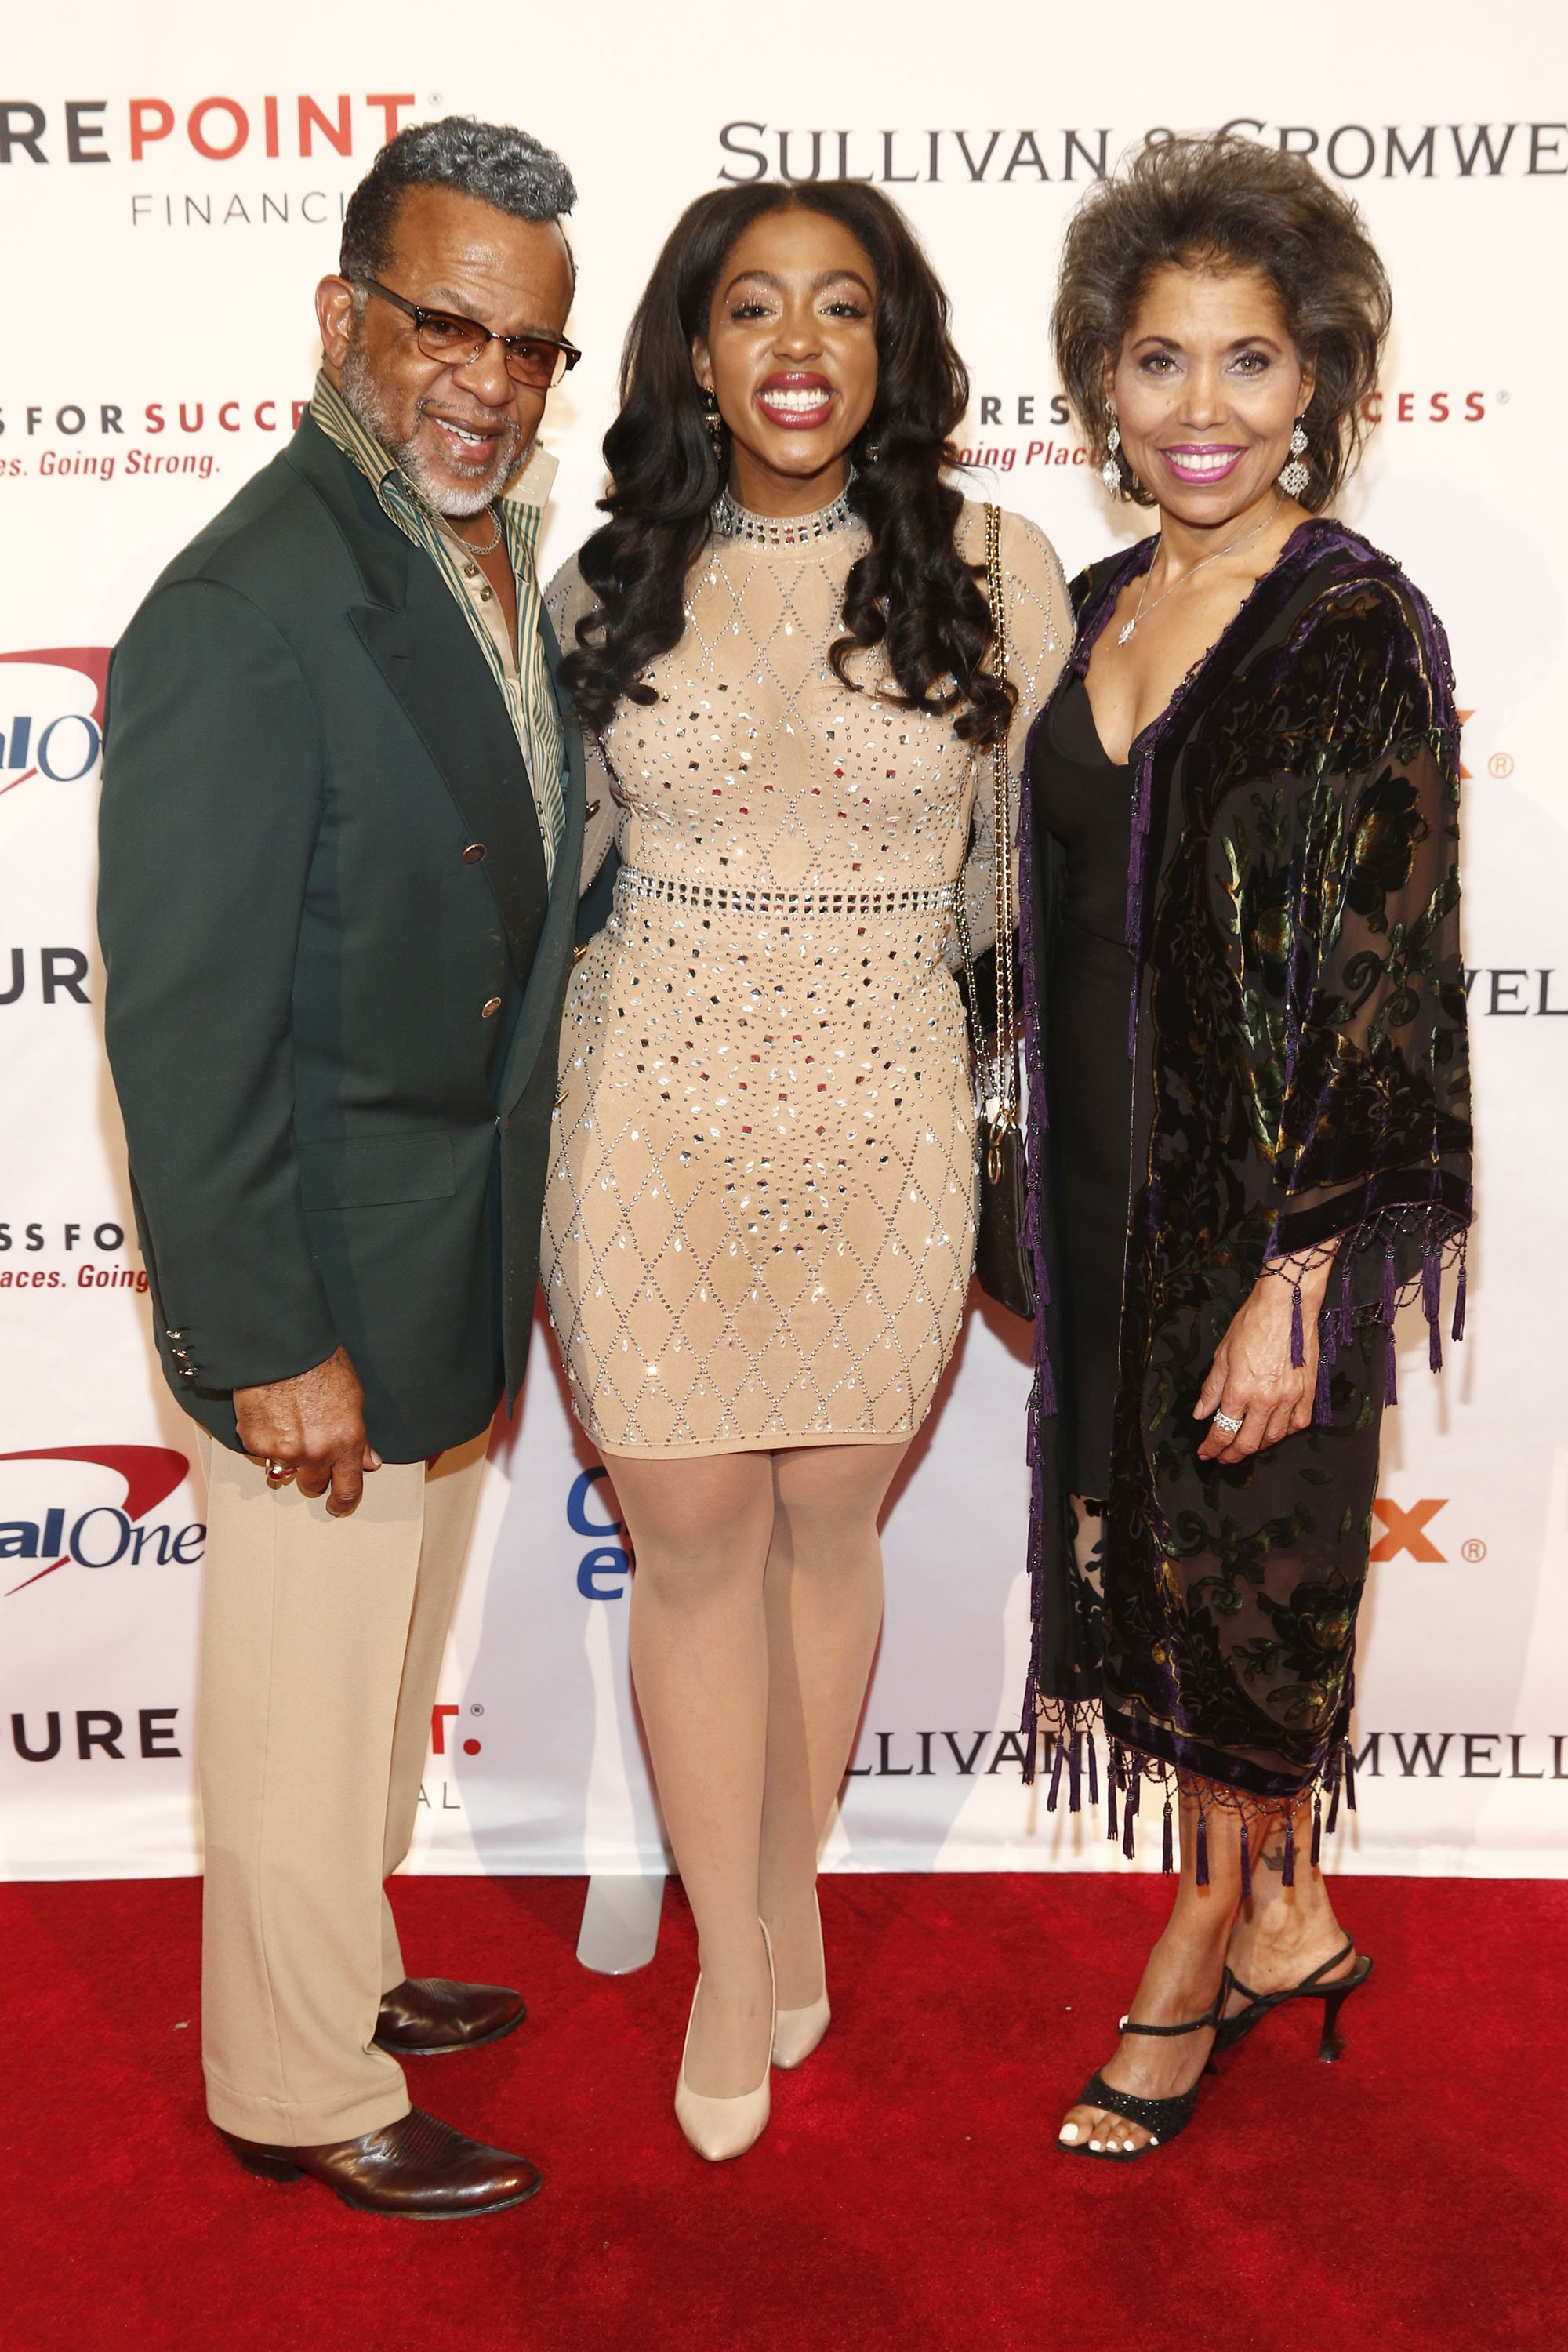 Carlton Pearson, Majeste Pearson and Gina Marie Gauthier attend the 2019 Dress For Success Live Vibrantly Gala on April 10, 2019 in New York City. | Photo: GettyImages